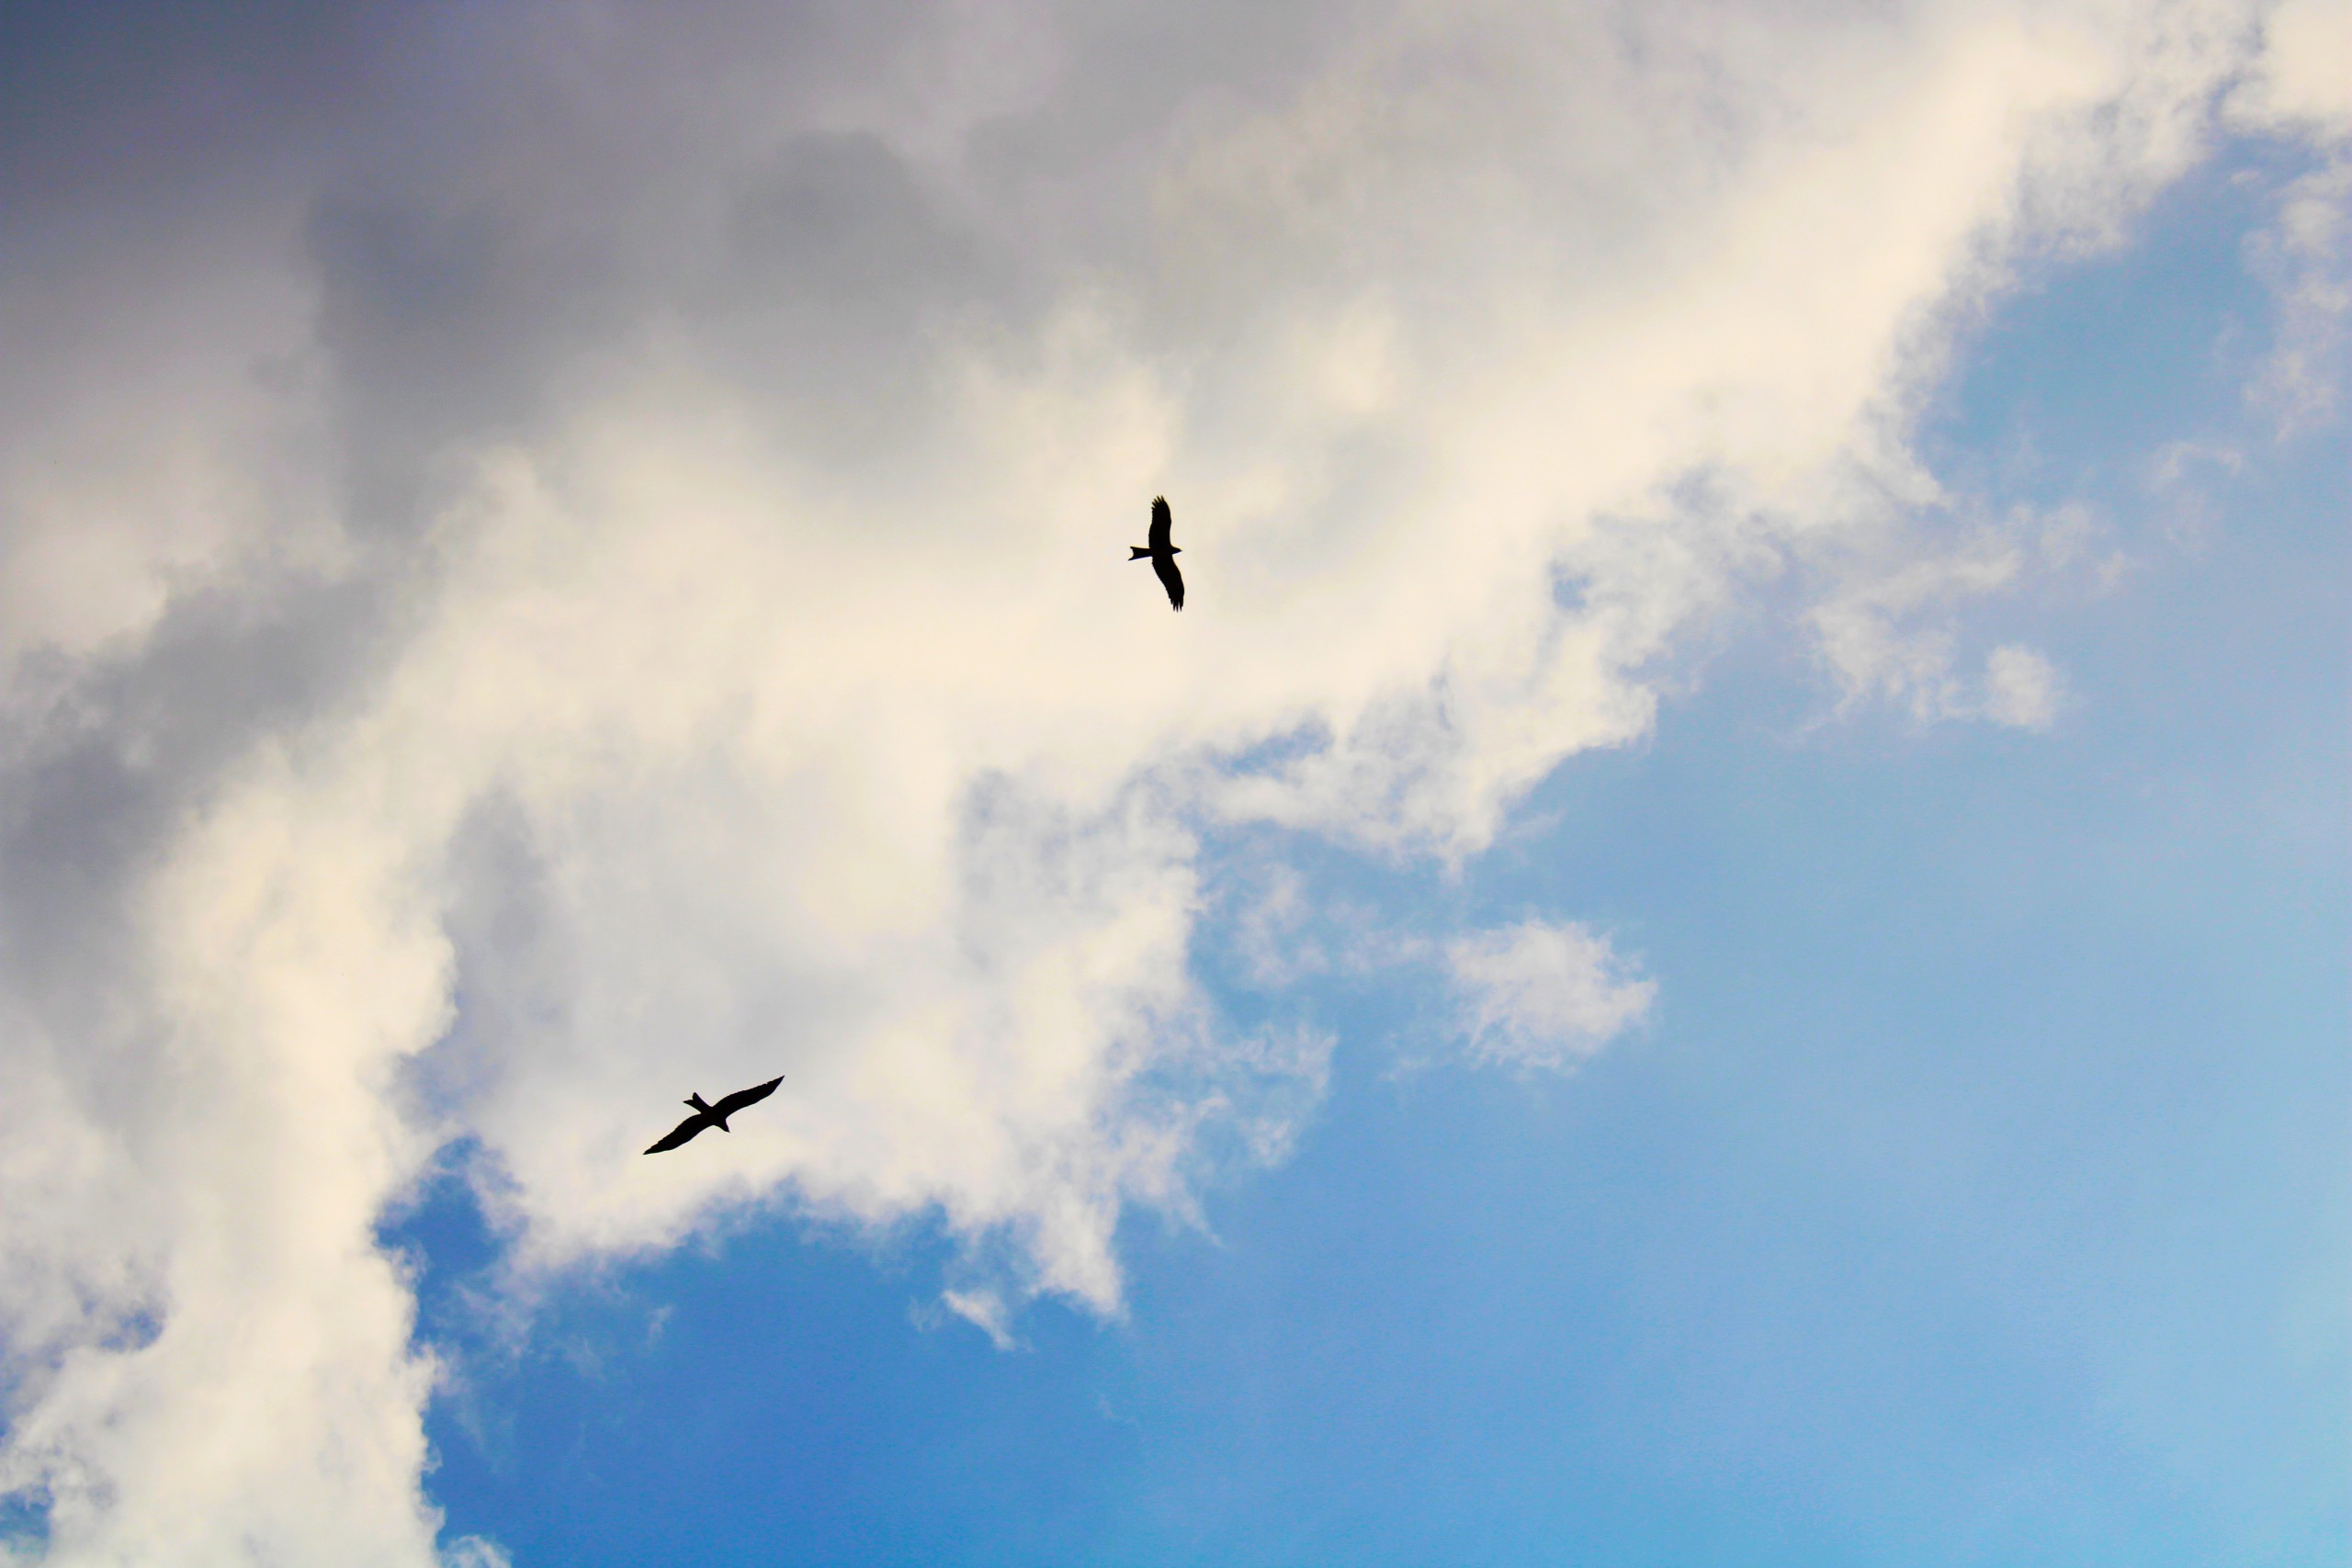 Two birds flying silhouette